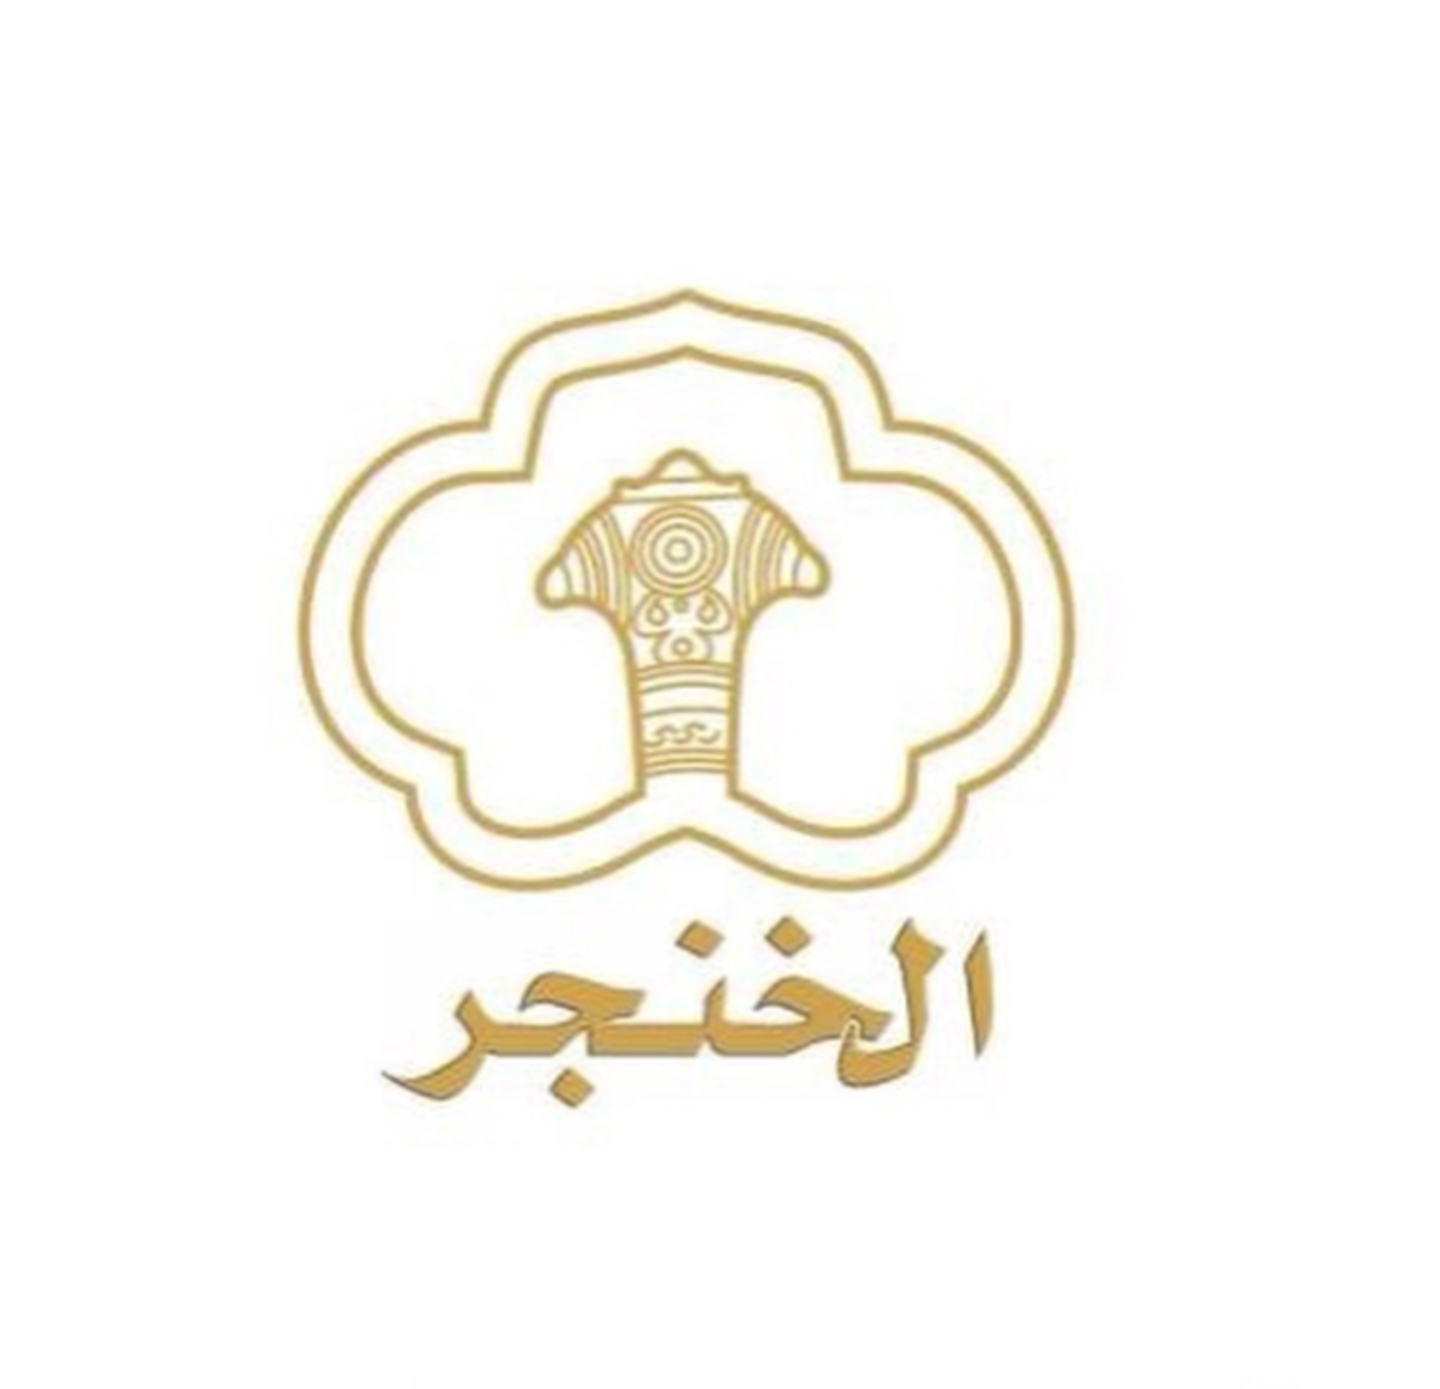 HiDubai-business-al-khanjar-incense-perfume-shopping-beauty-cosmetics-stores-al-hamriya-dubai